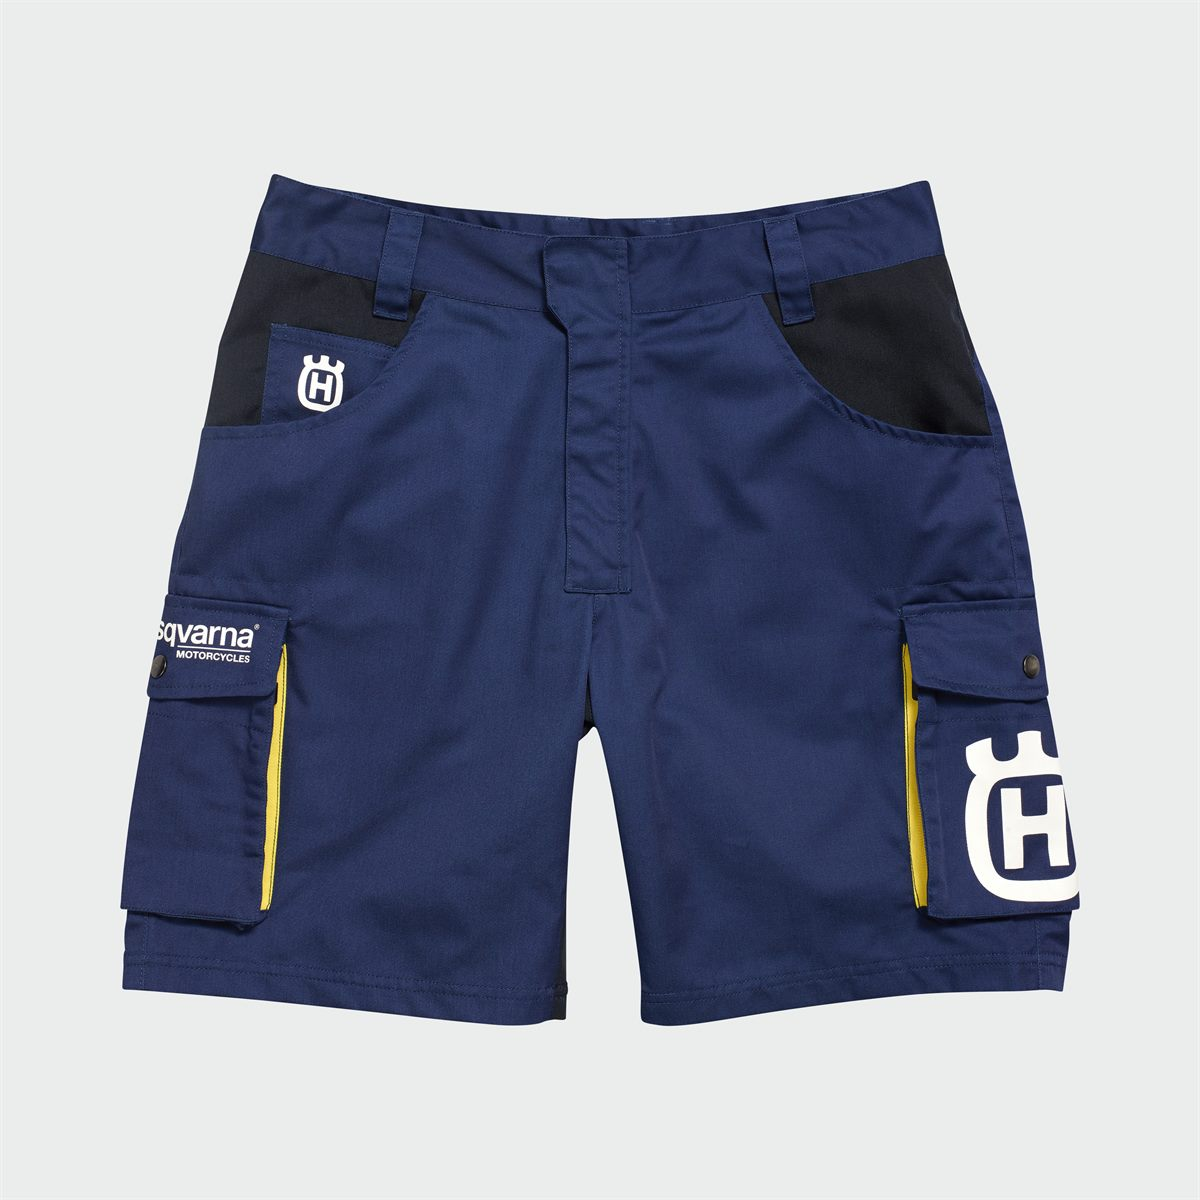 2019 HUSQVARNA REPLICA TEAM WEAR - REPLICA TEAM SHORTS FRONT